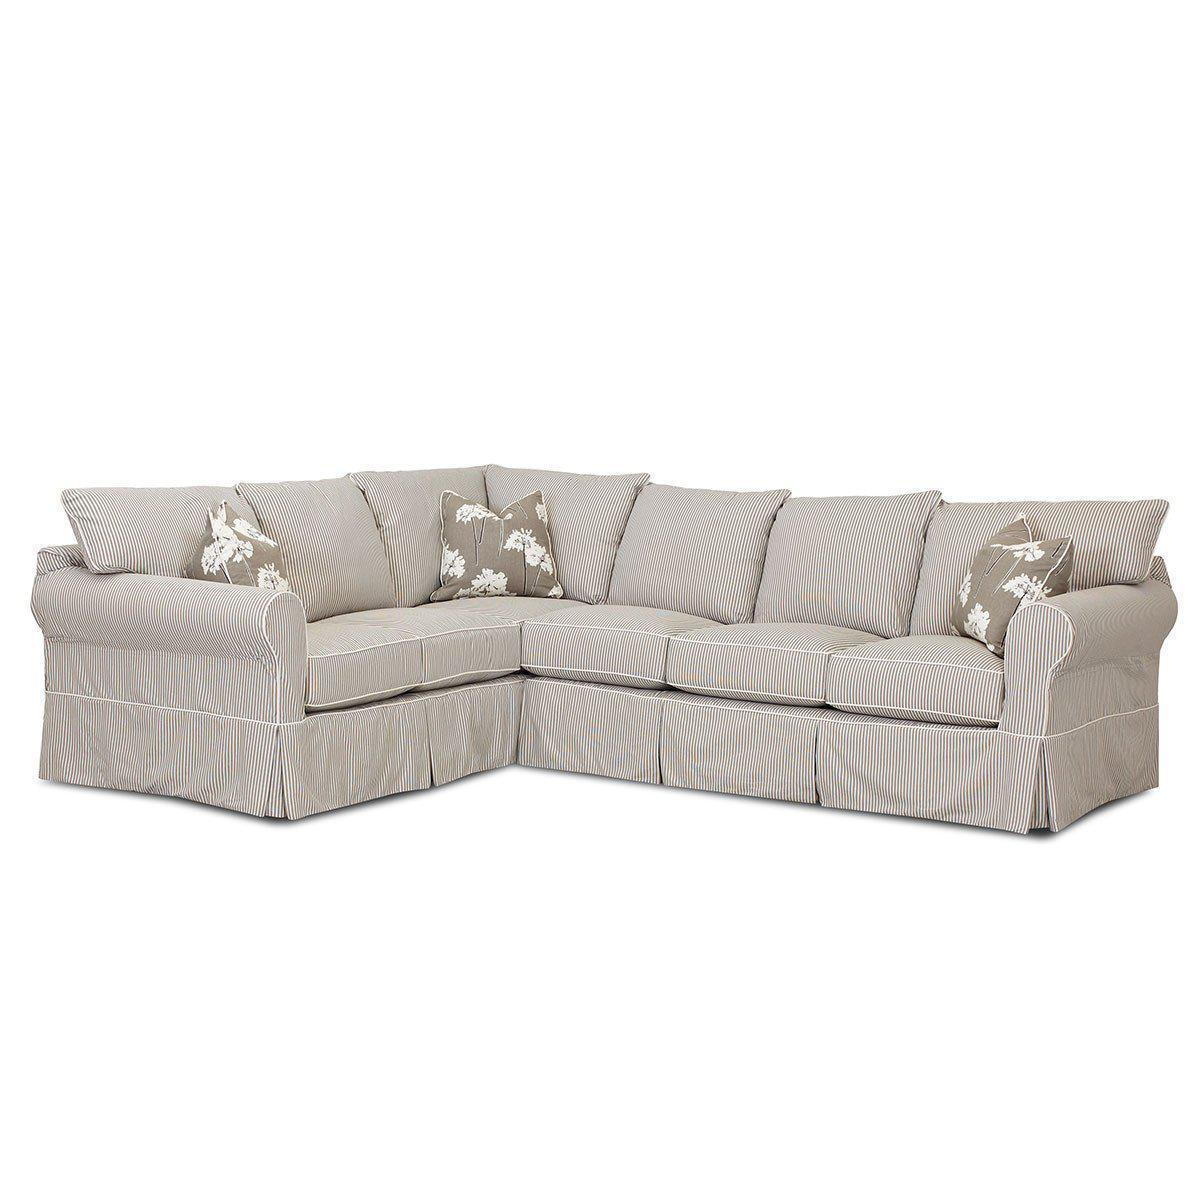 Jenny 2-Piece Slipcover Sectional